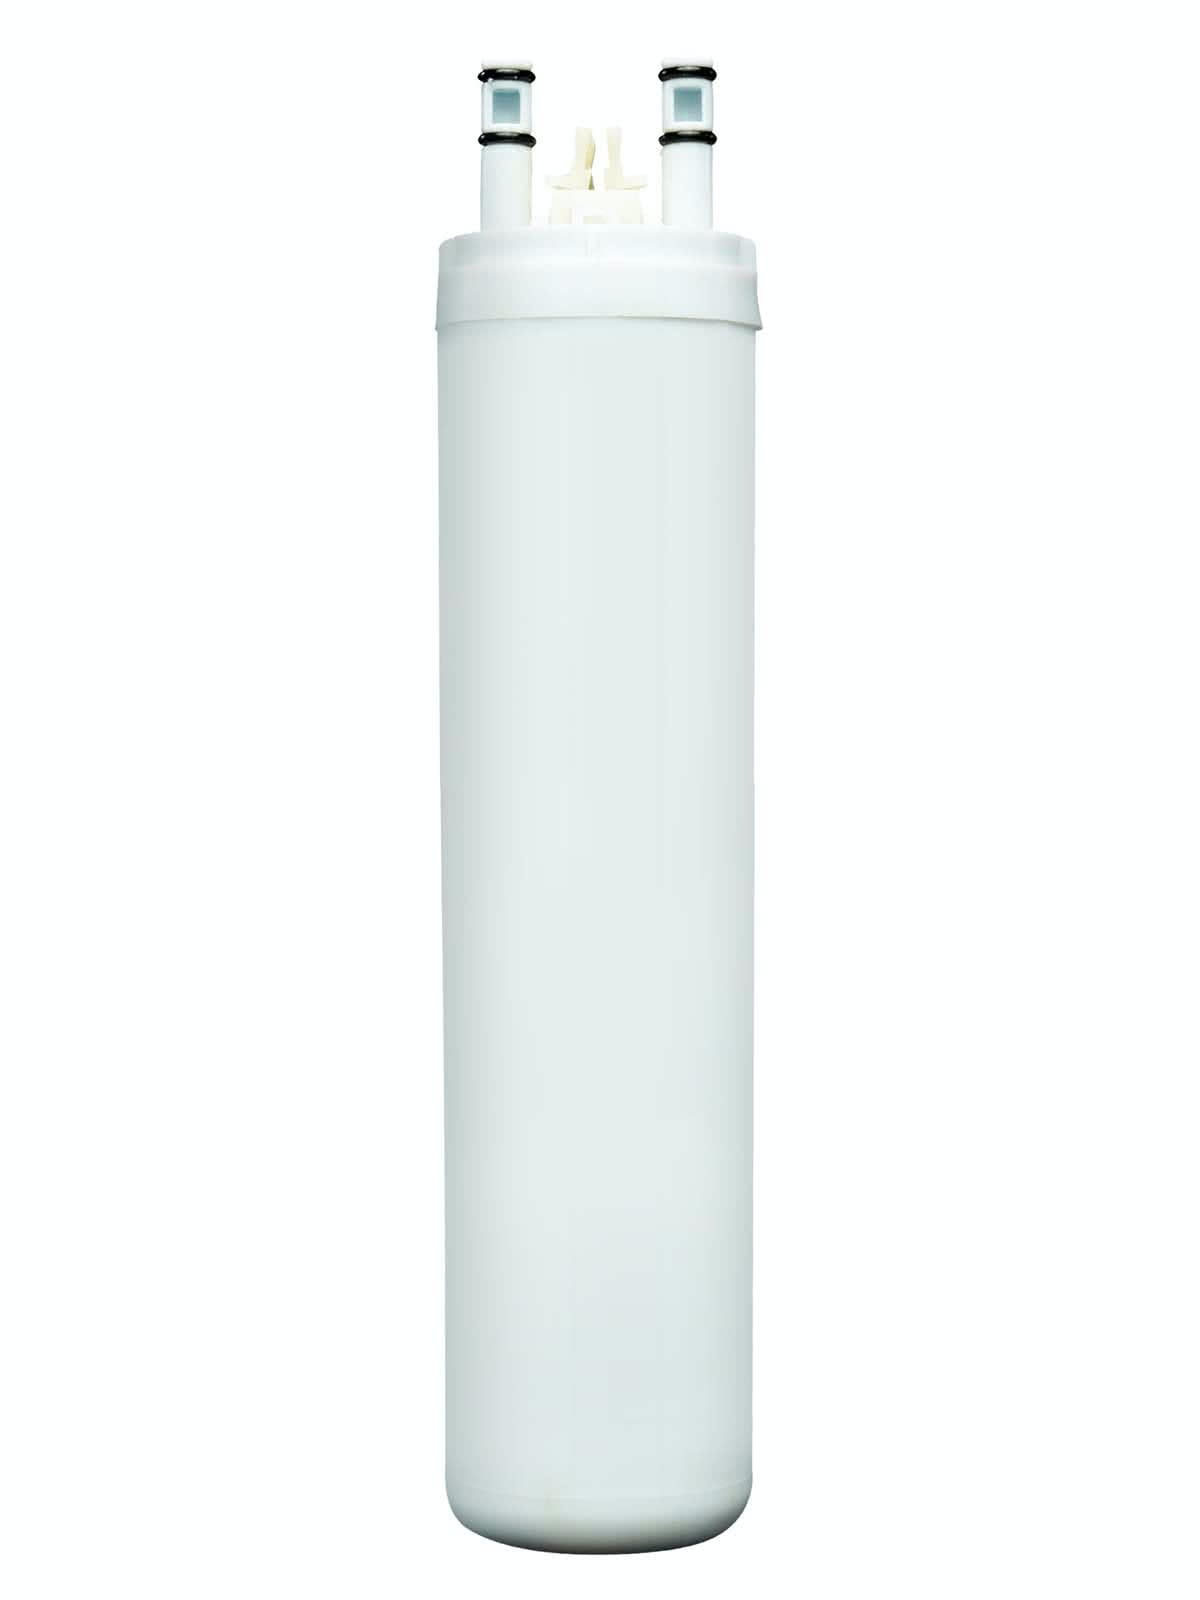 ULTRAWF compatible second nature water filter